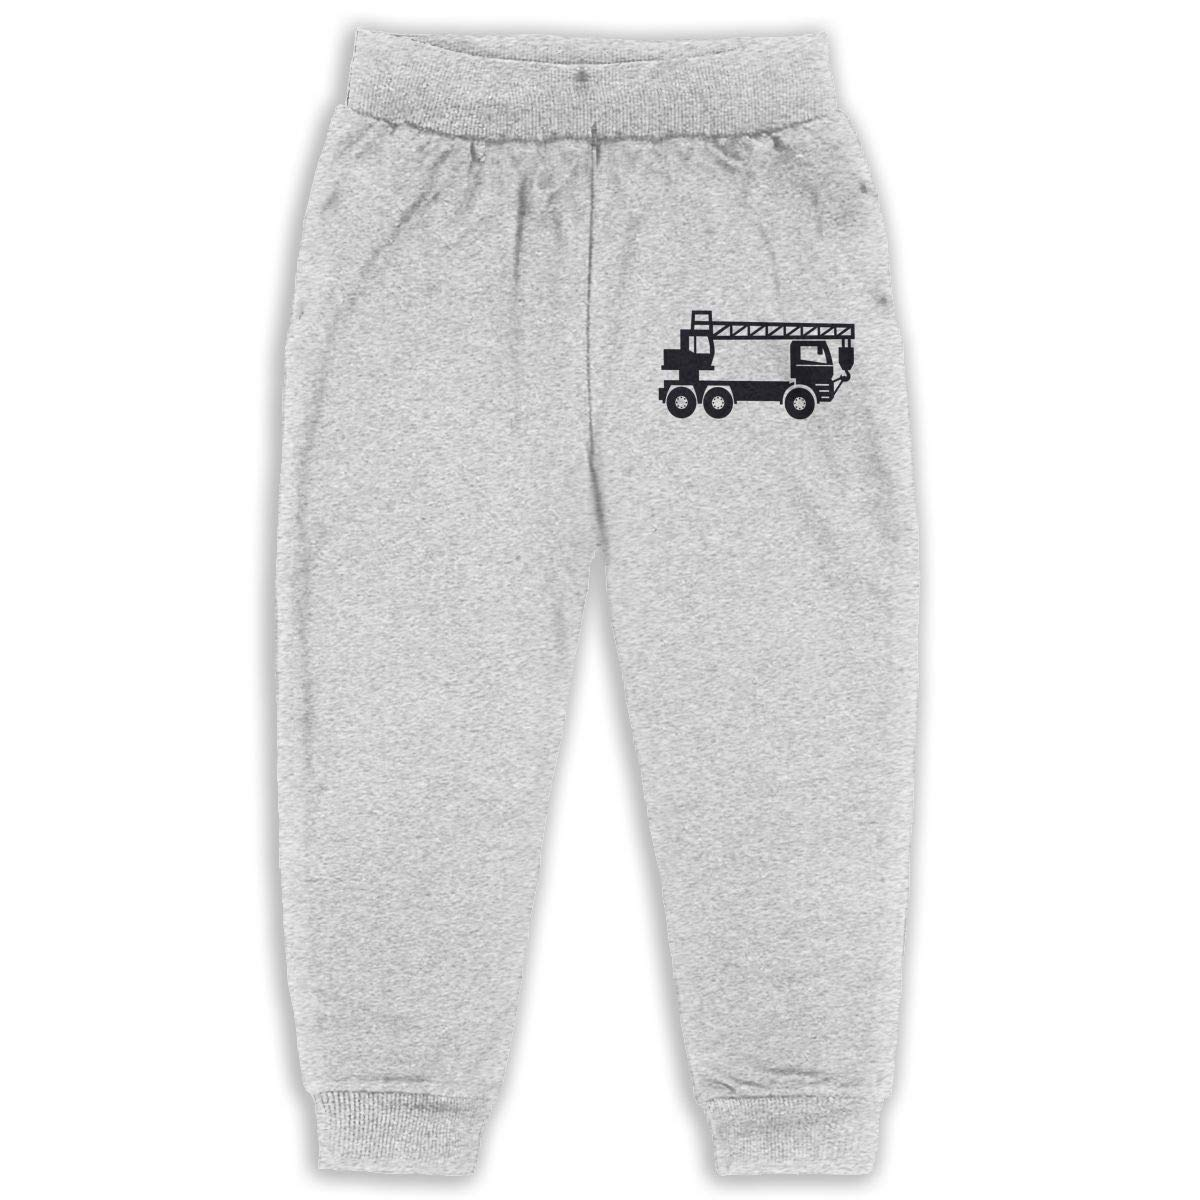 AaAarr Toddlers Crane Drawstring Sweatpants for Boys and Girls